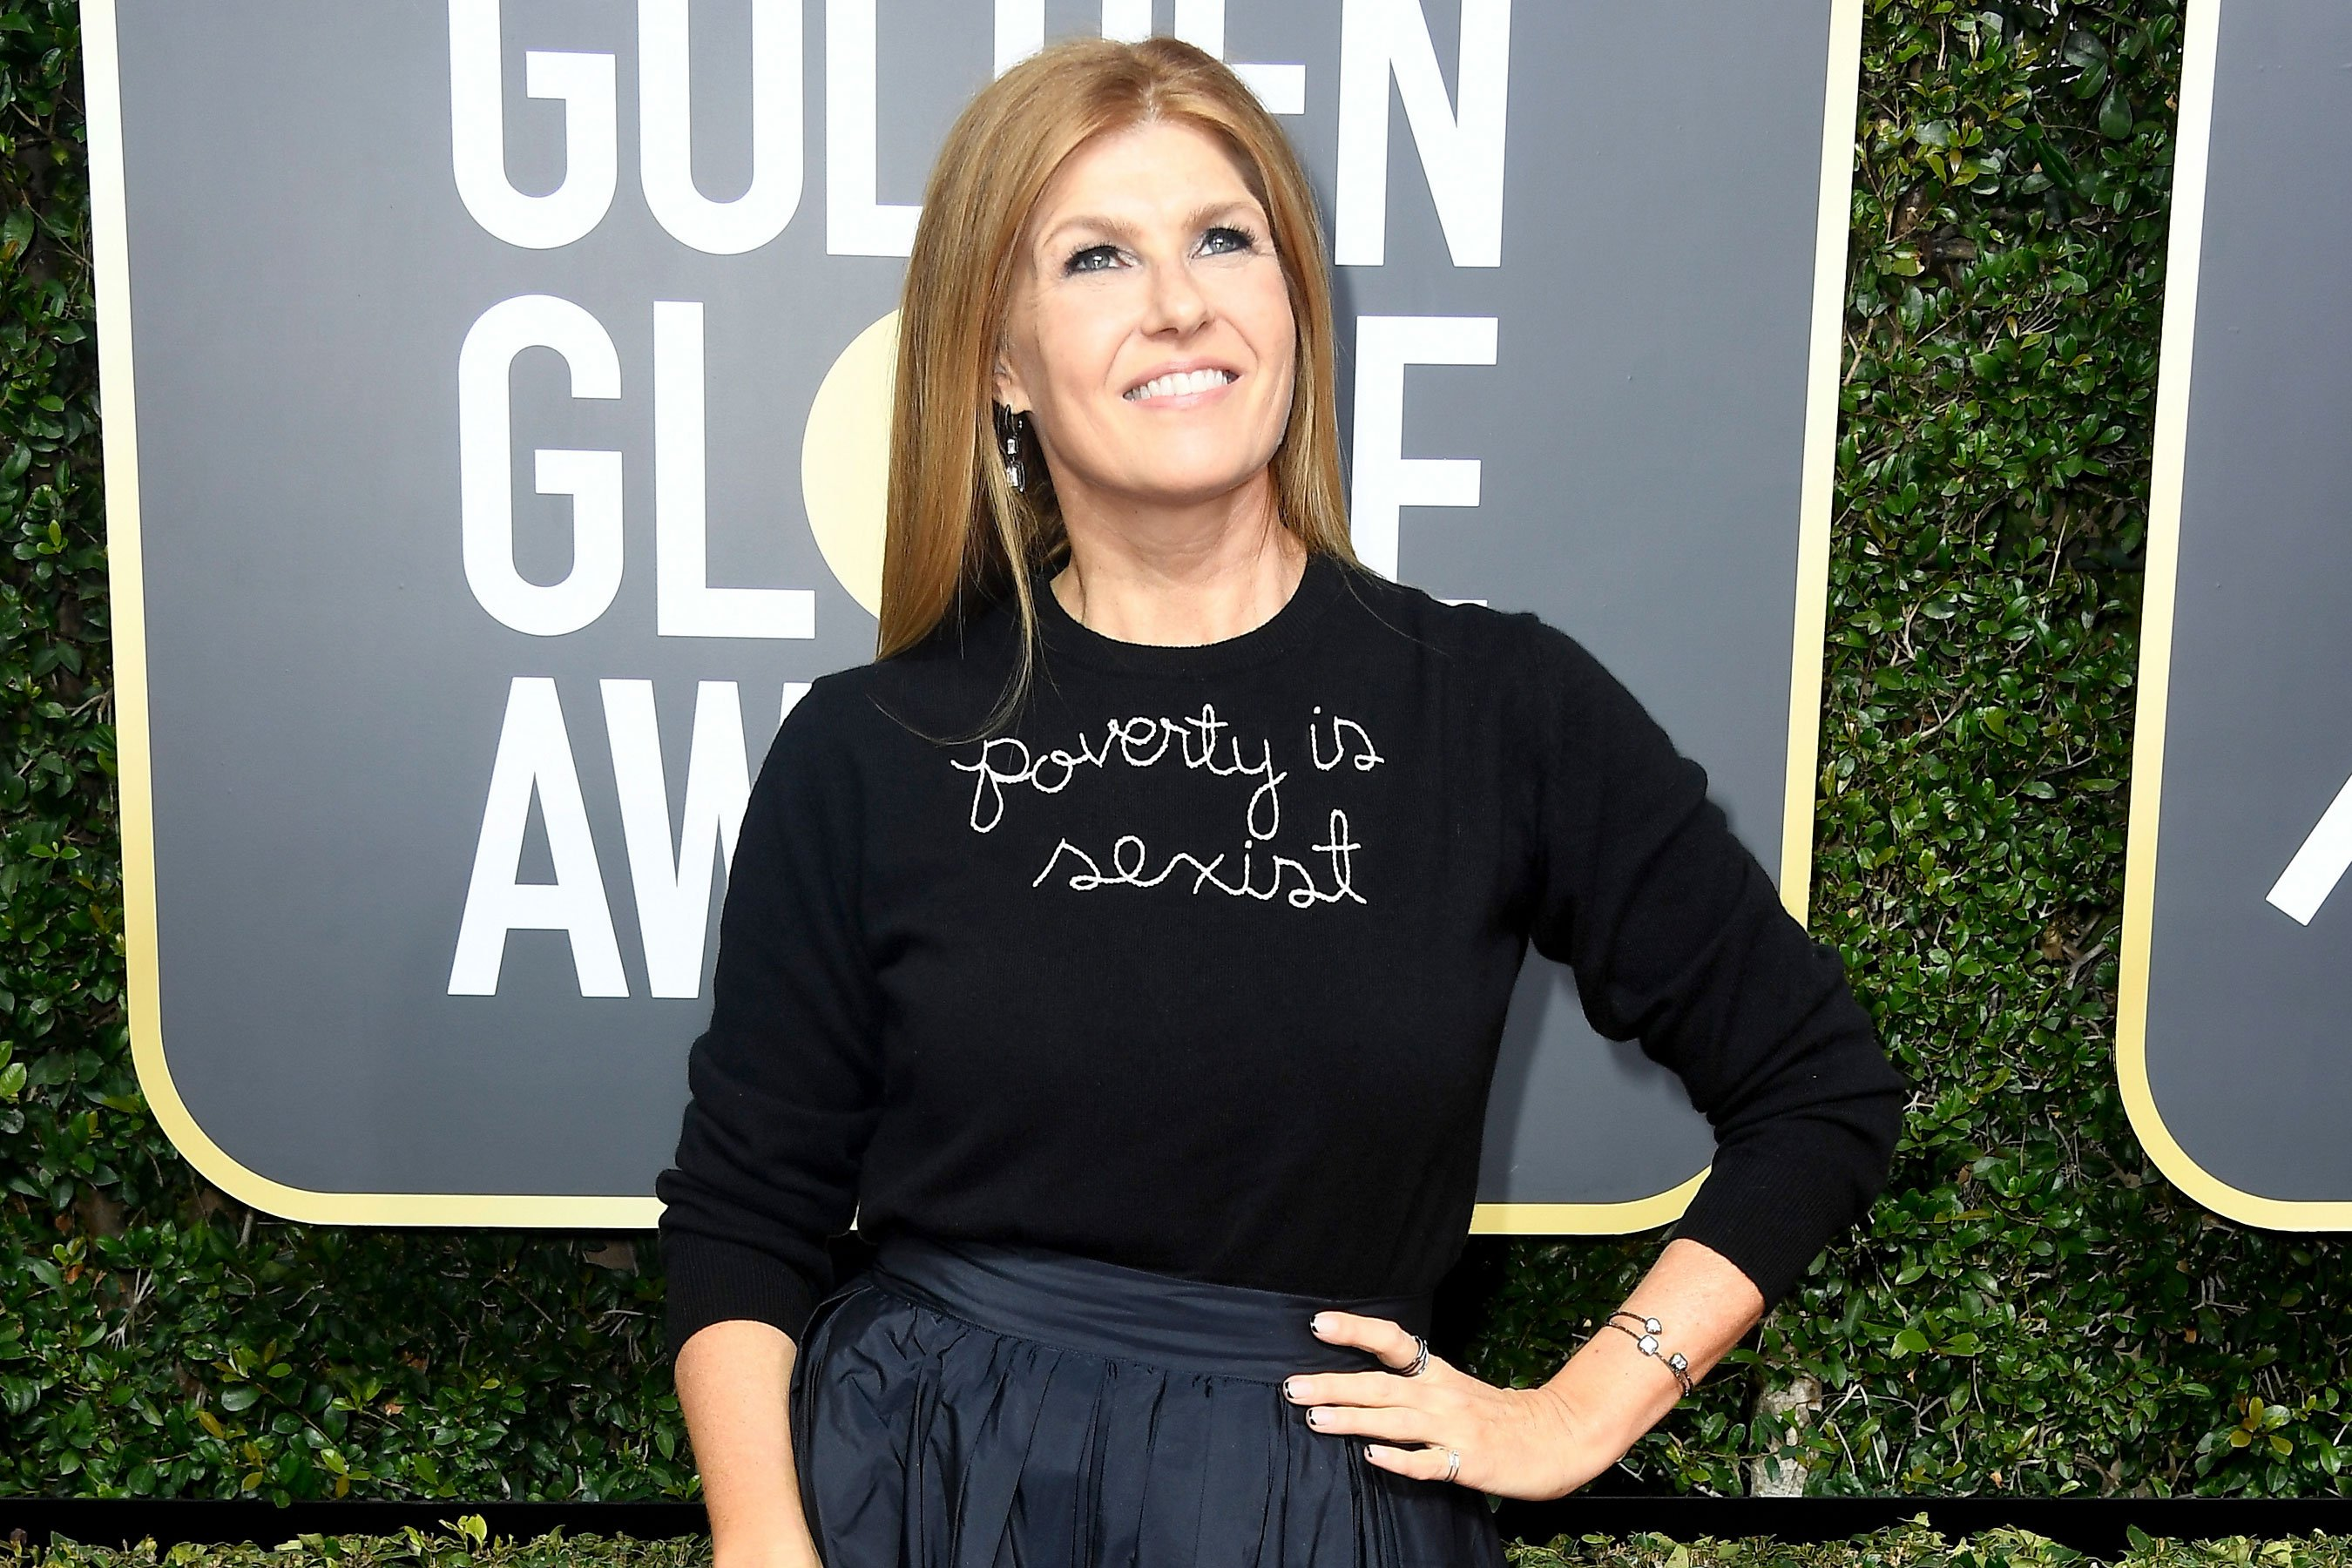 Connie Britton defends 'poverty is sexist' sweater